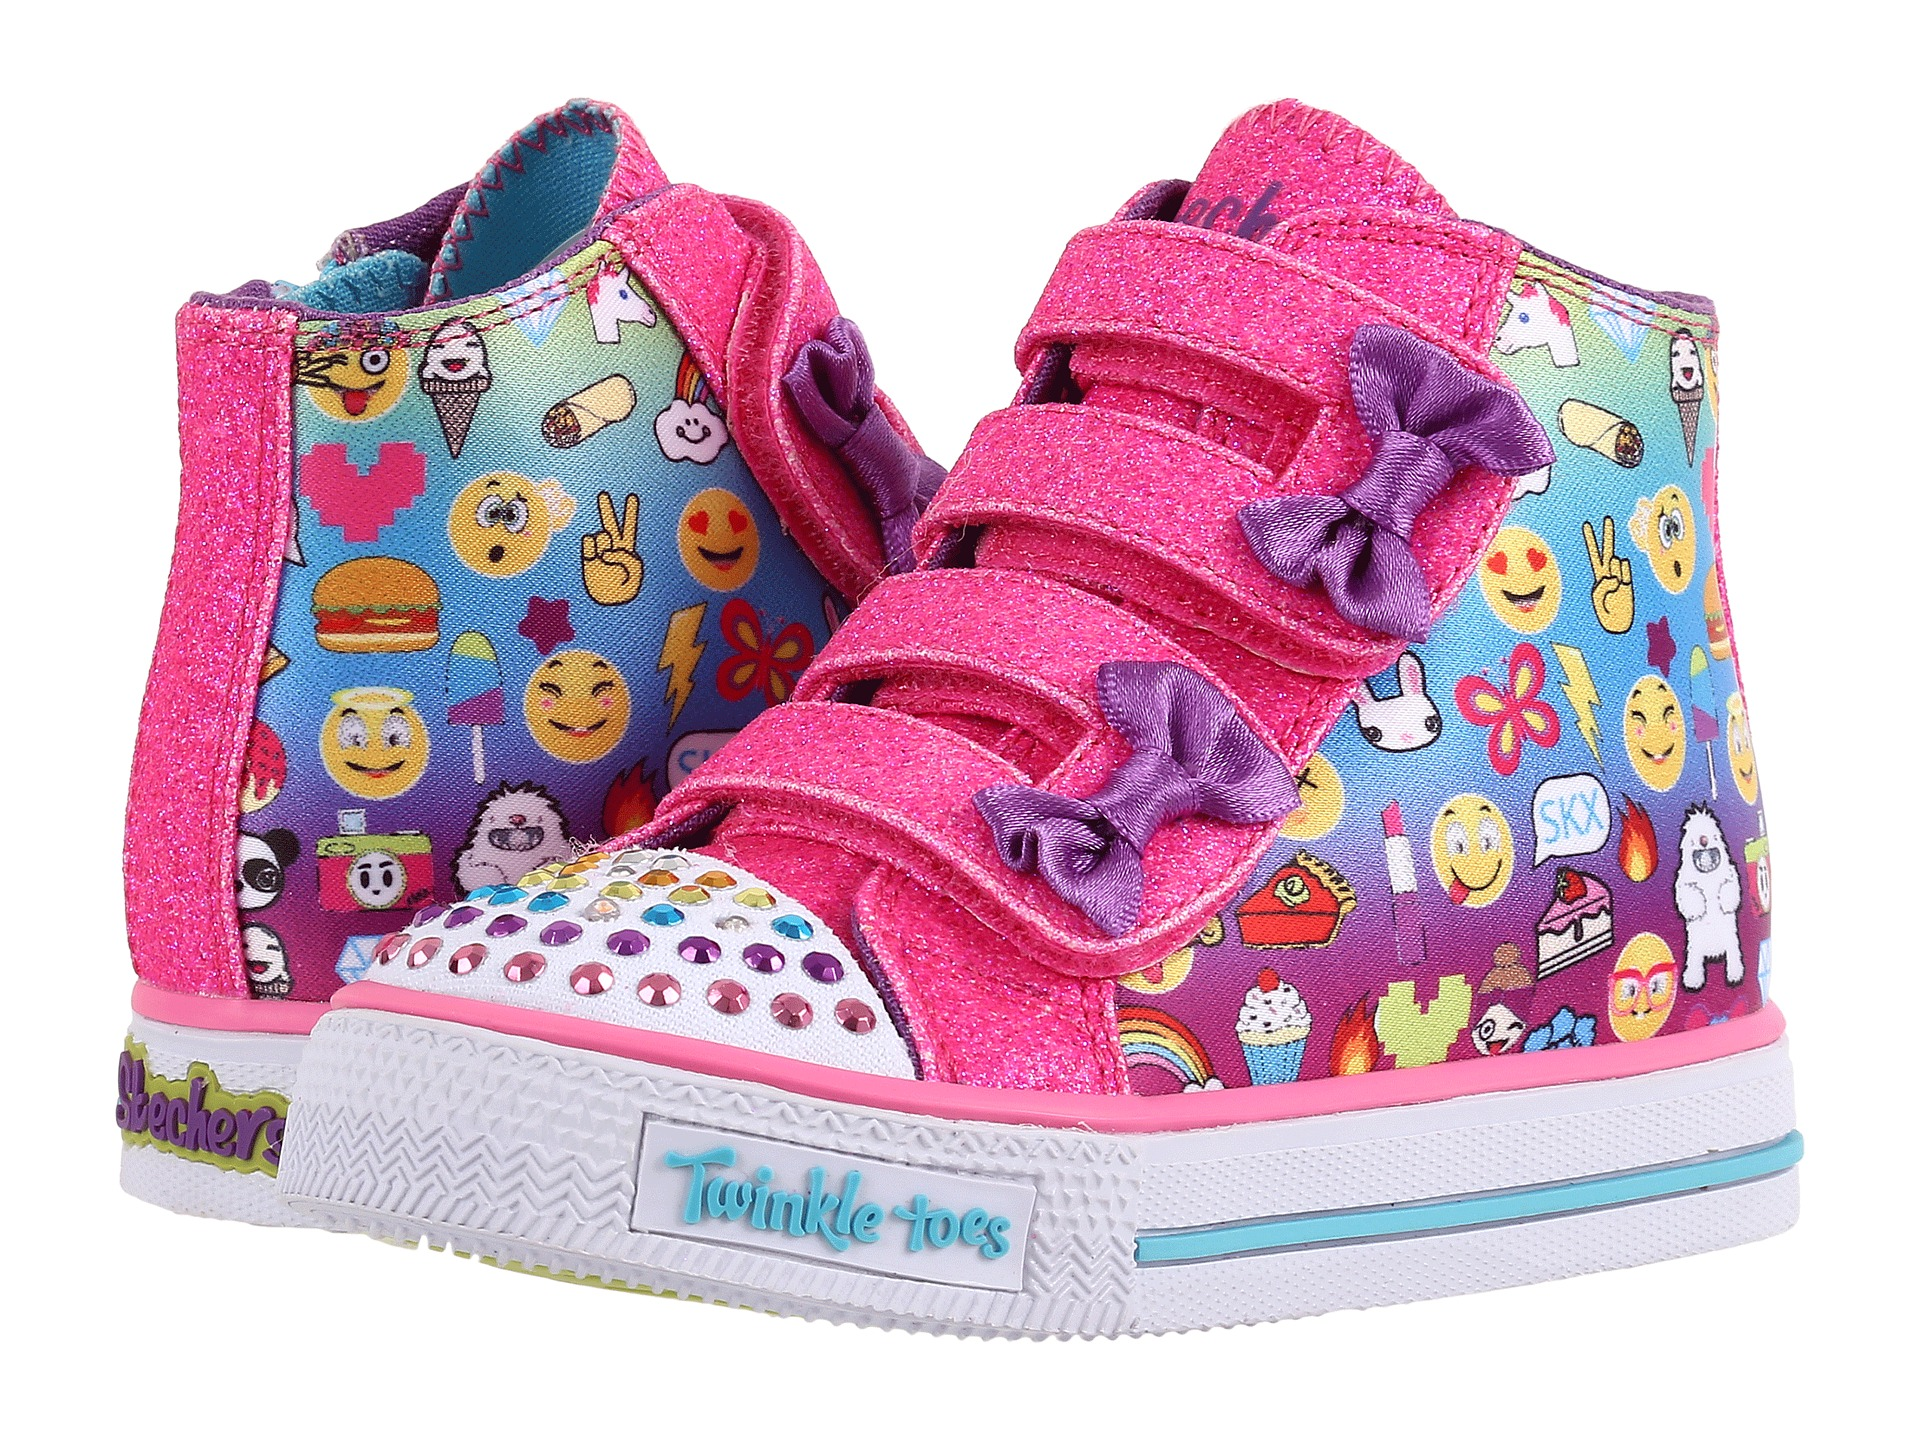 skechers kids cheap   OFF65% The Largest Catalog Discounts 5888bc952